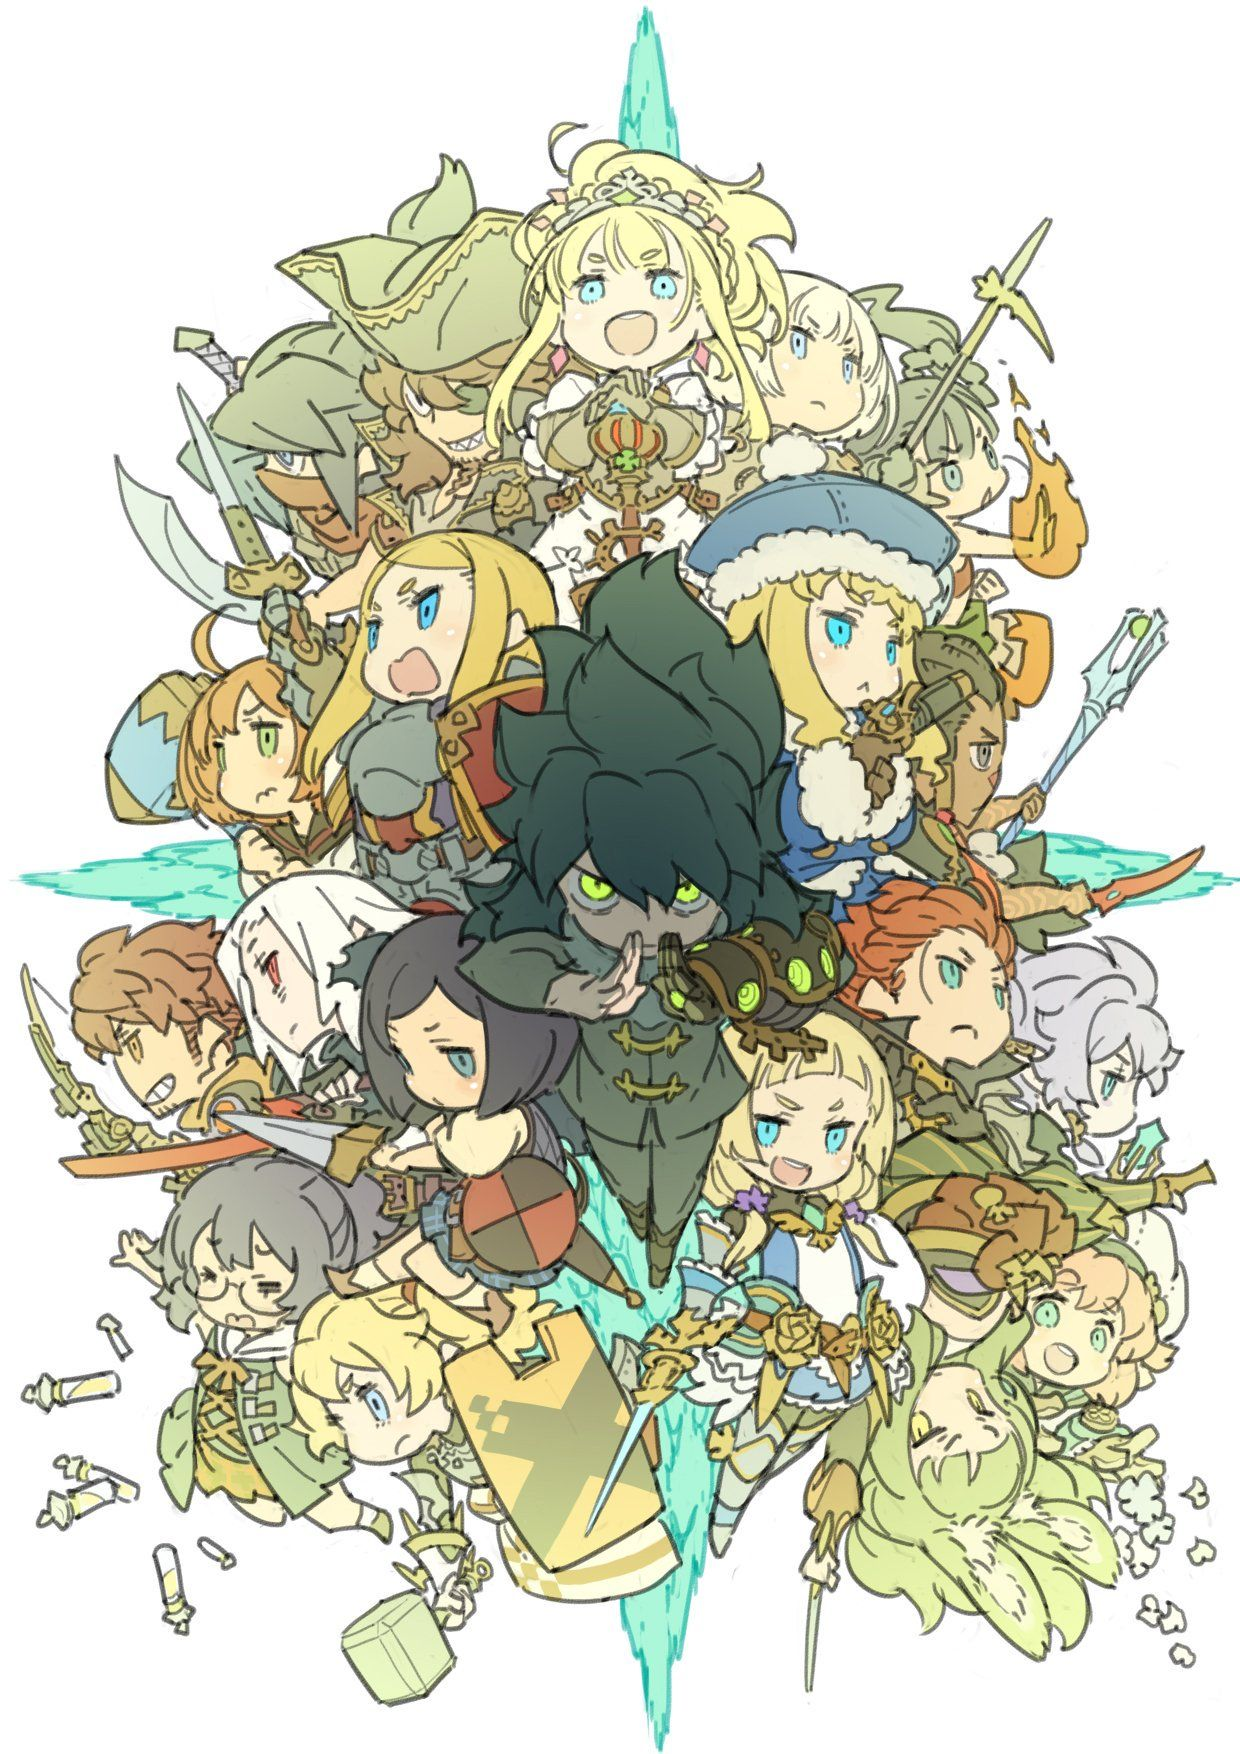 Iョ向悠= on Etrian odyssey, Character design, Cute anime